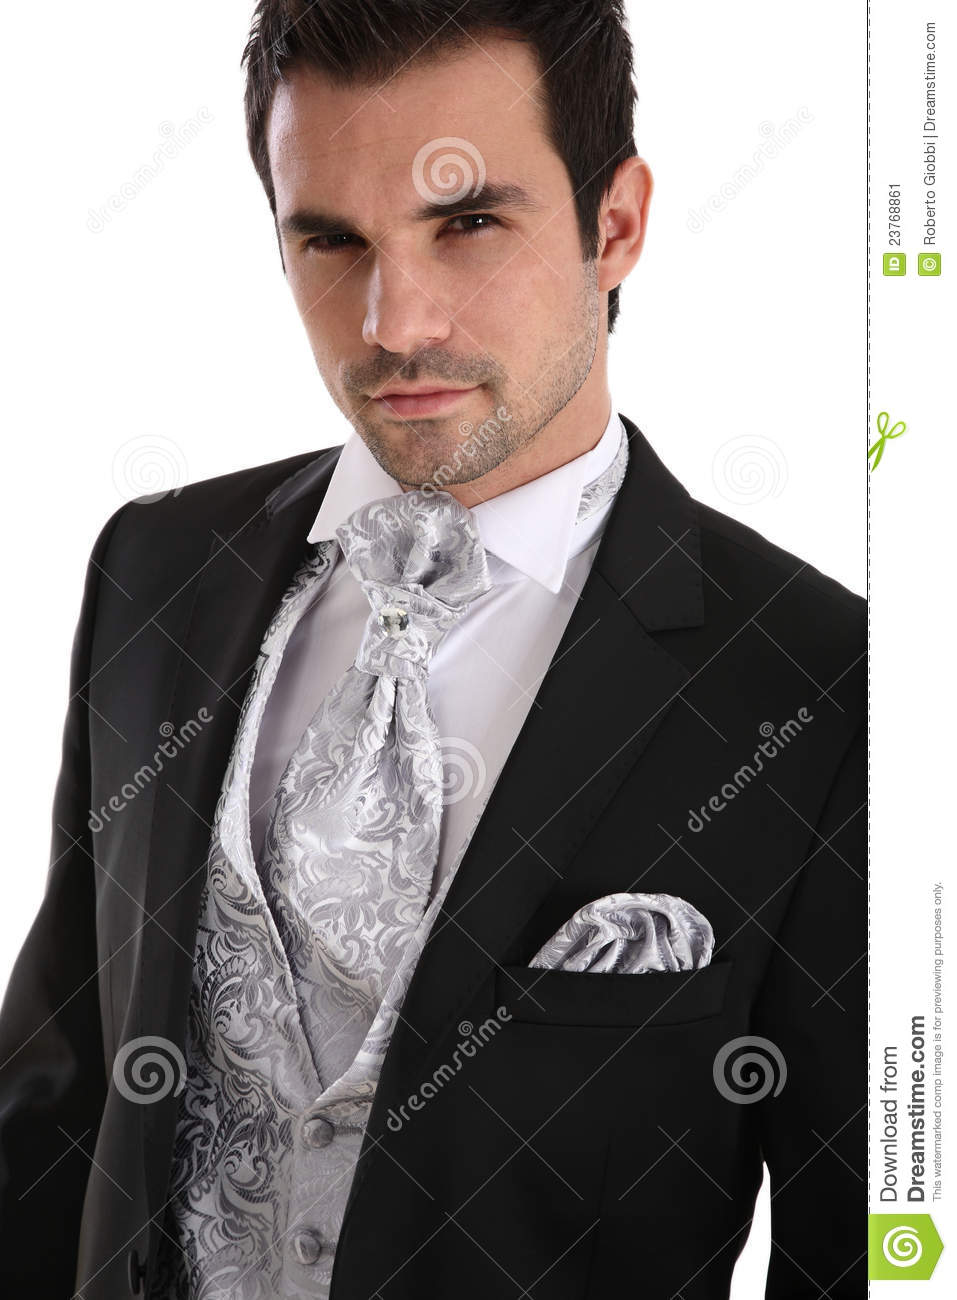 Handsome Young Man In Tuxedo Stock Image - Image: 23768861